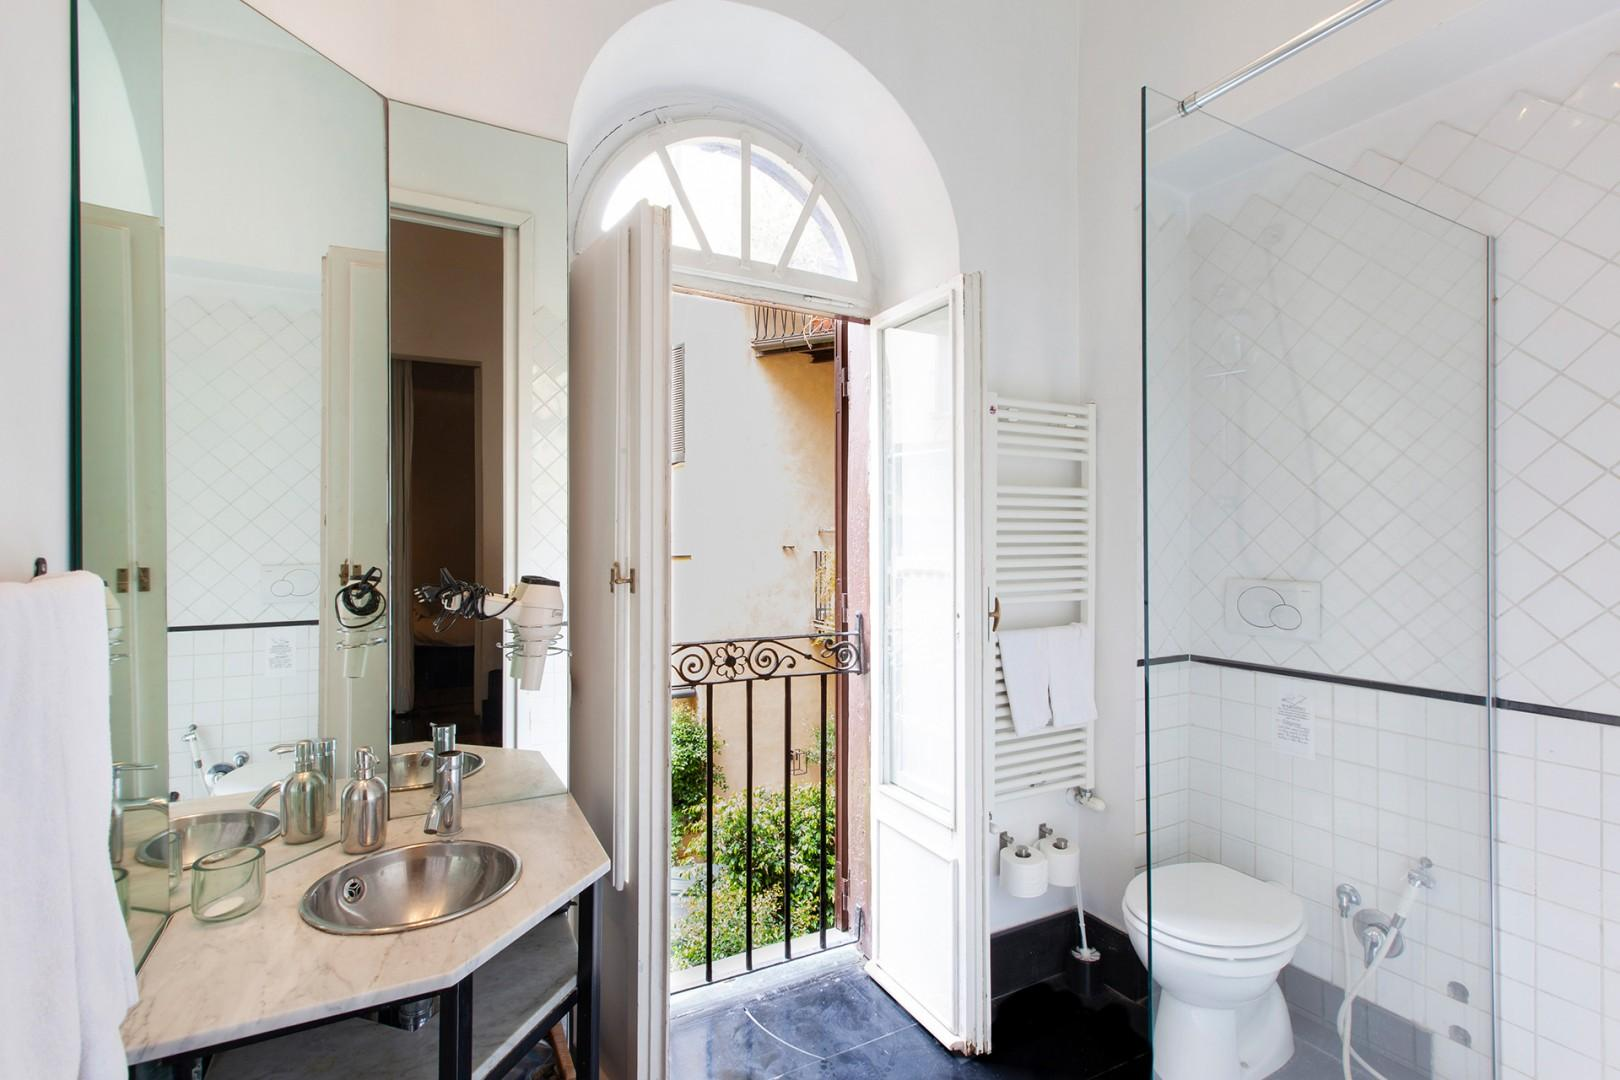 This sparkling bathroom has a modern sink mounted on a glass counter.